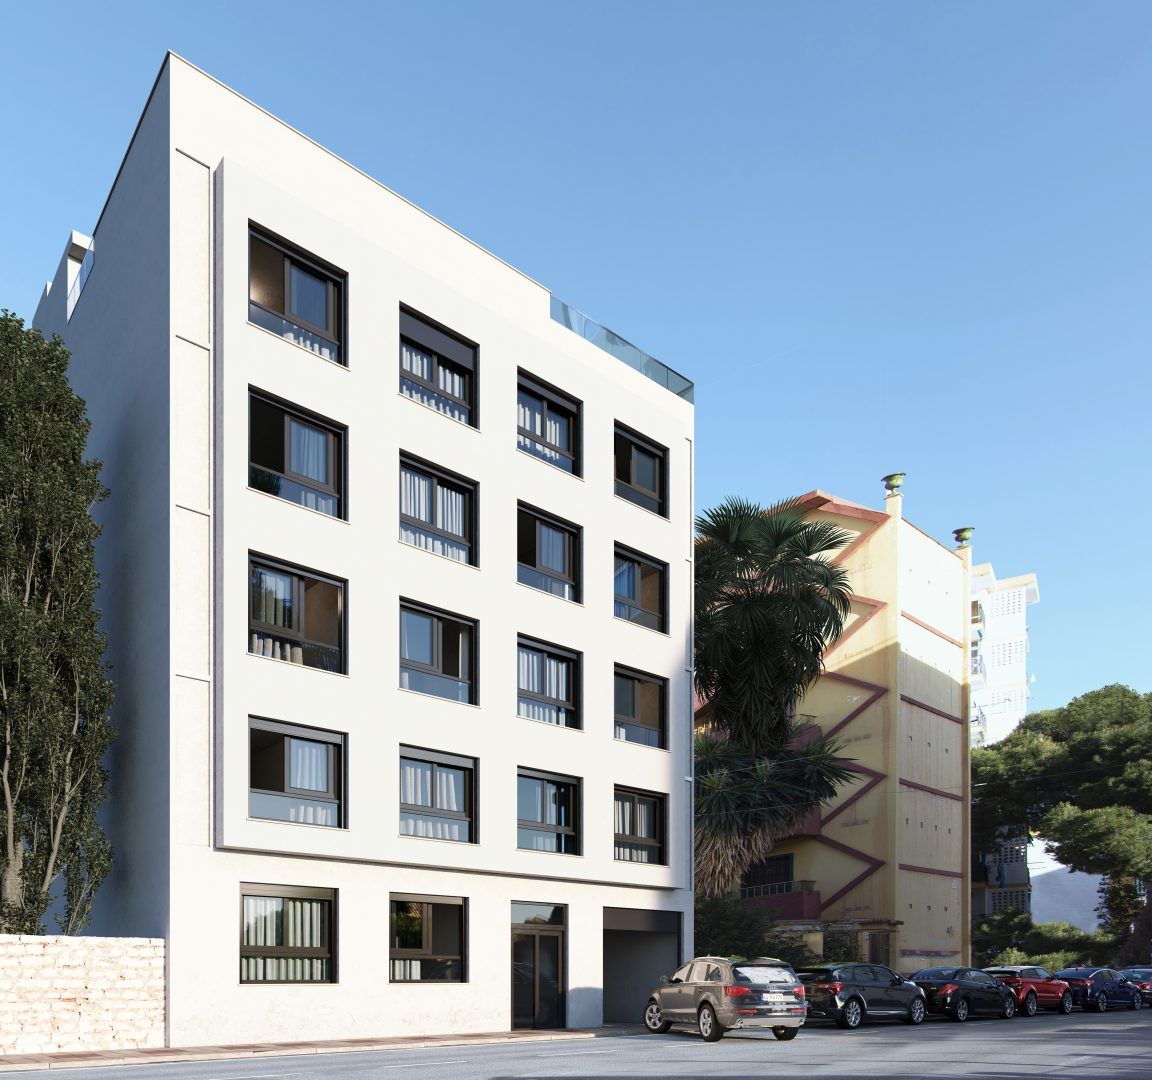 3D Render and real estate marketing project for two apartment buildings in Torremolinos (Malaga).